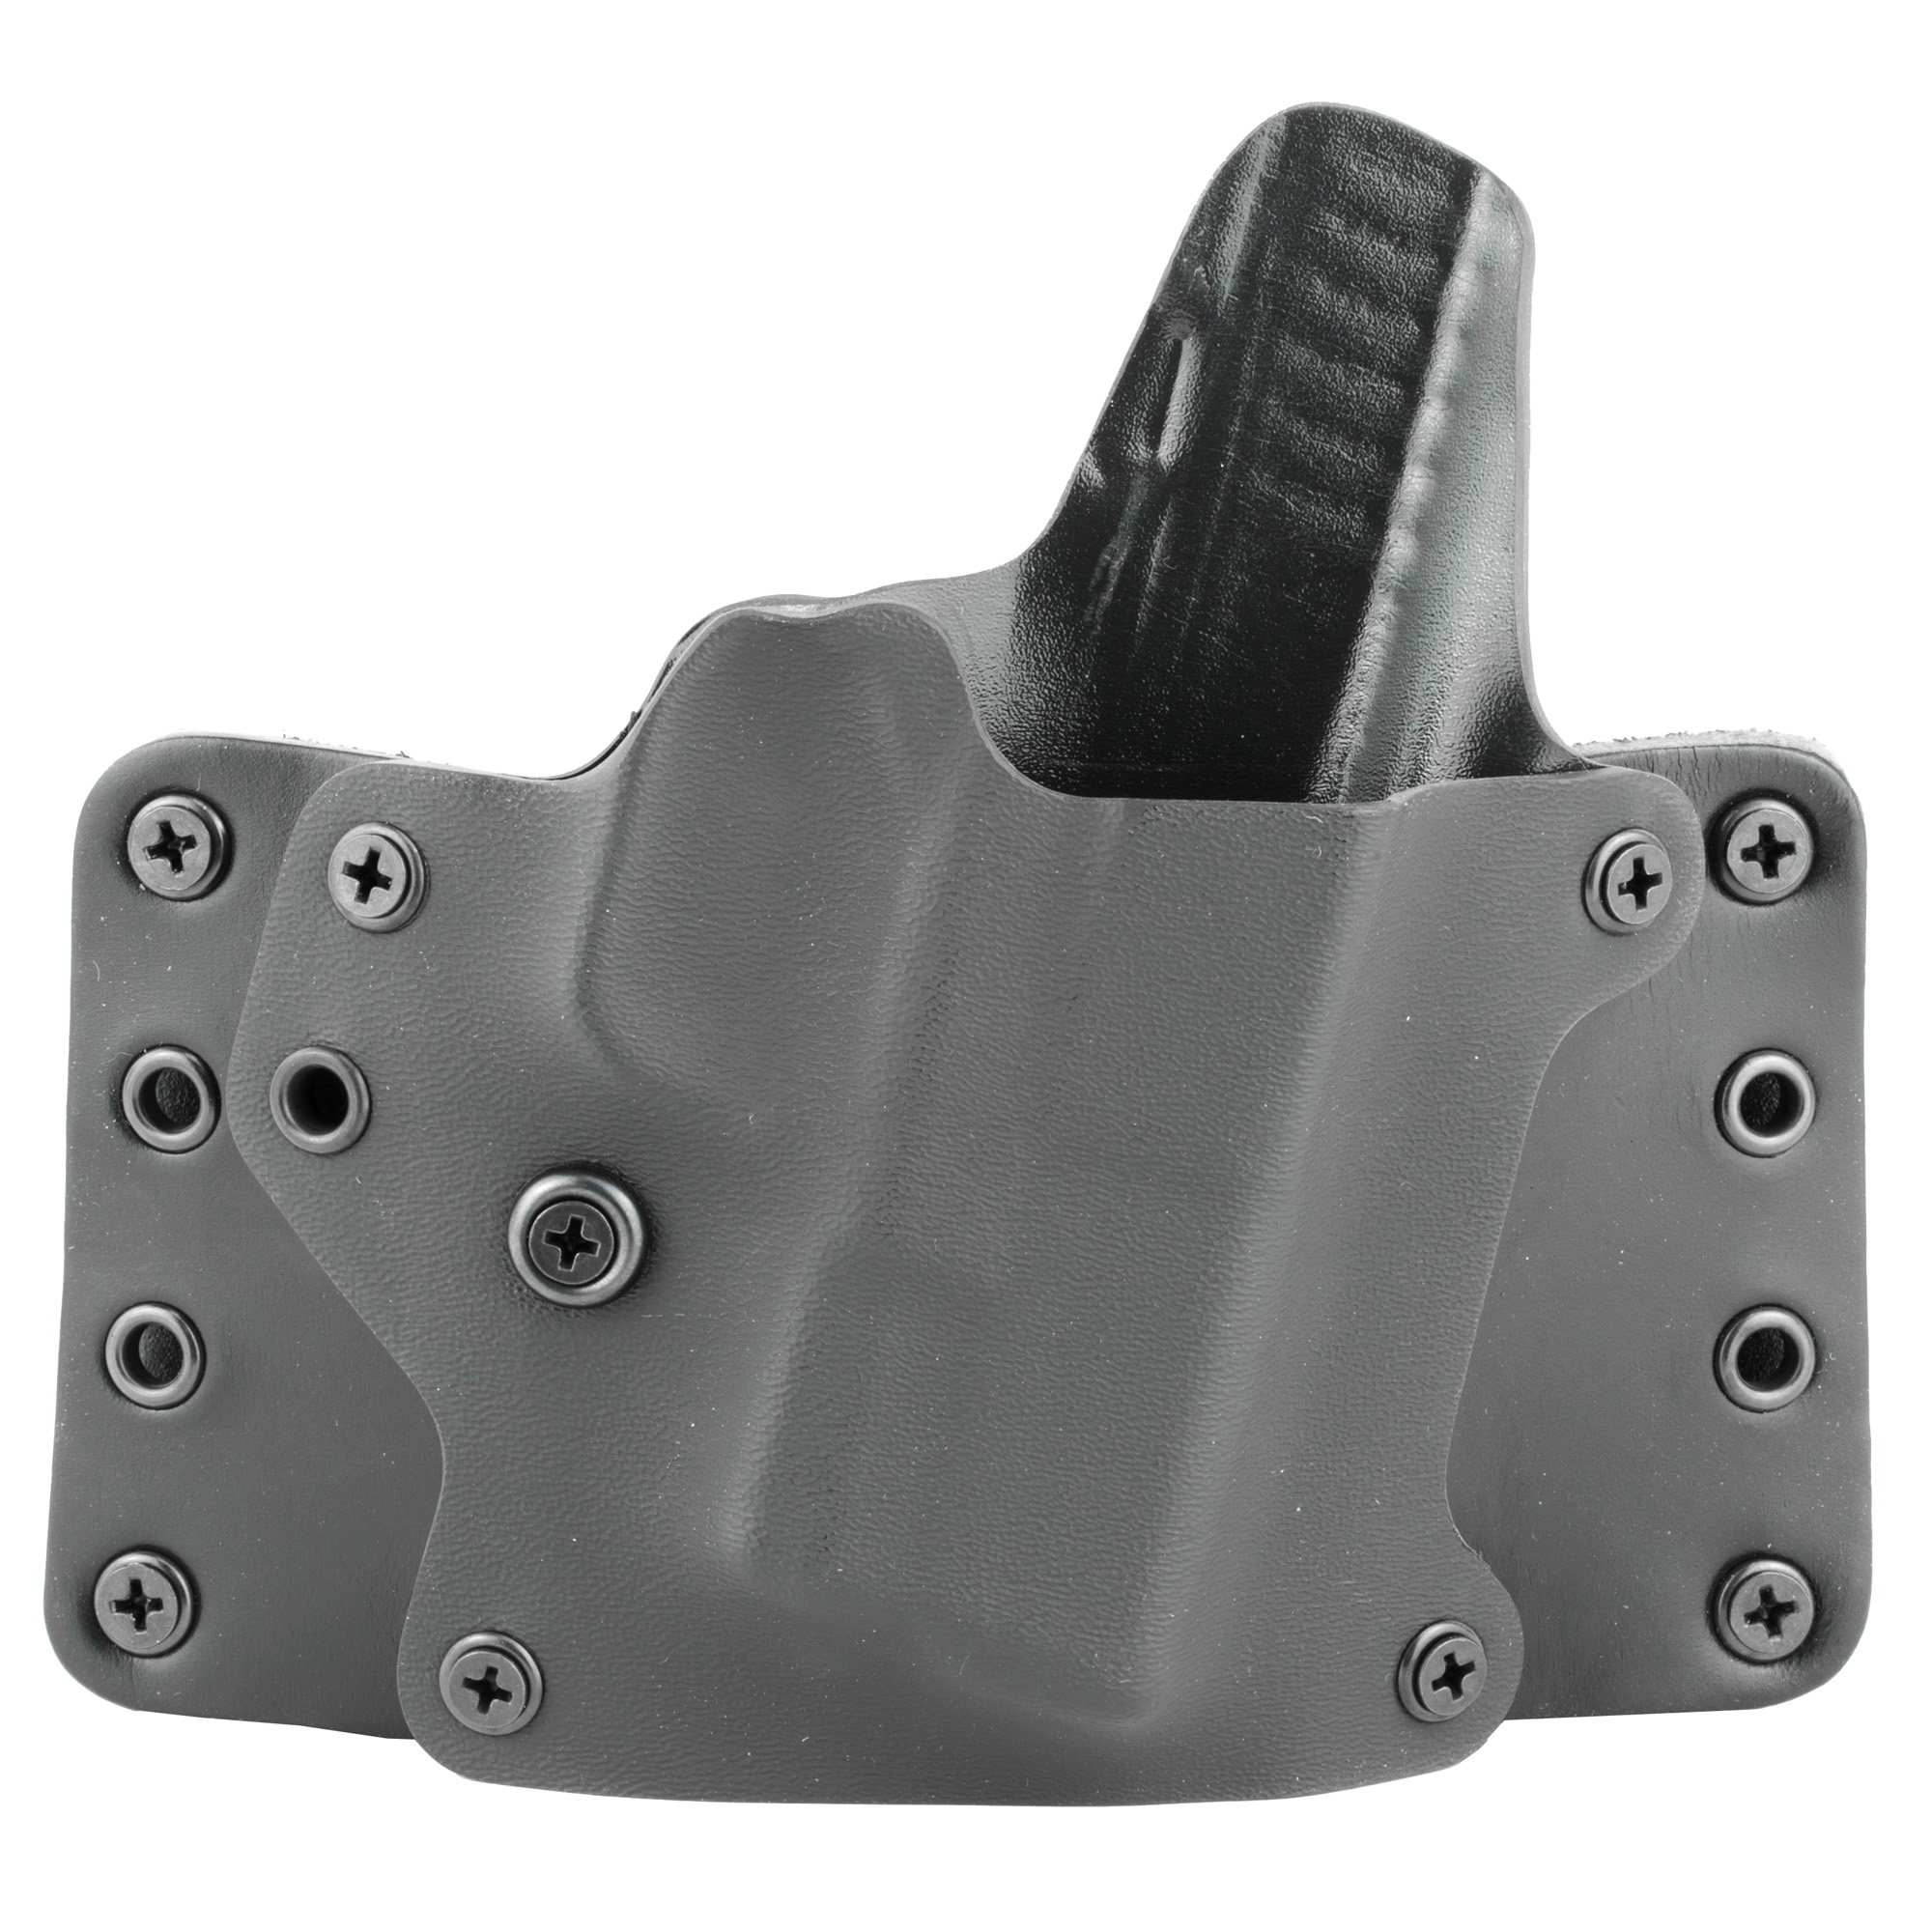 BlackPoint Tactical Springfield XDS Blackpoint Tactical Leather Wing OWB Holster 3.3″ Right Hand Leather/Kydex Belt Holster – Black